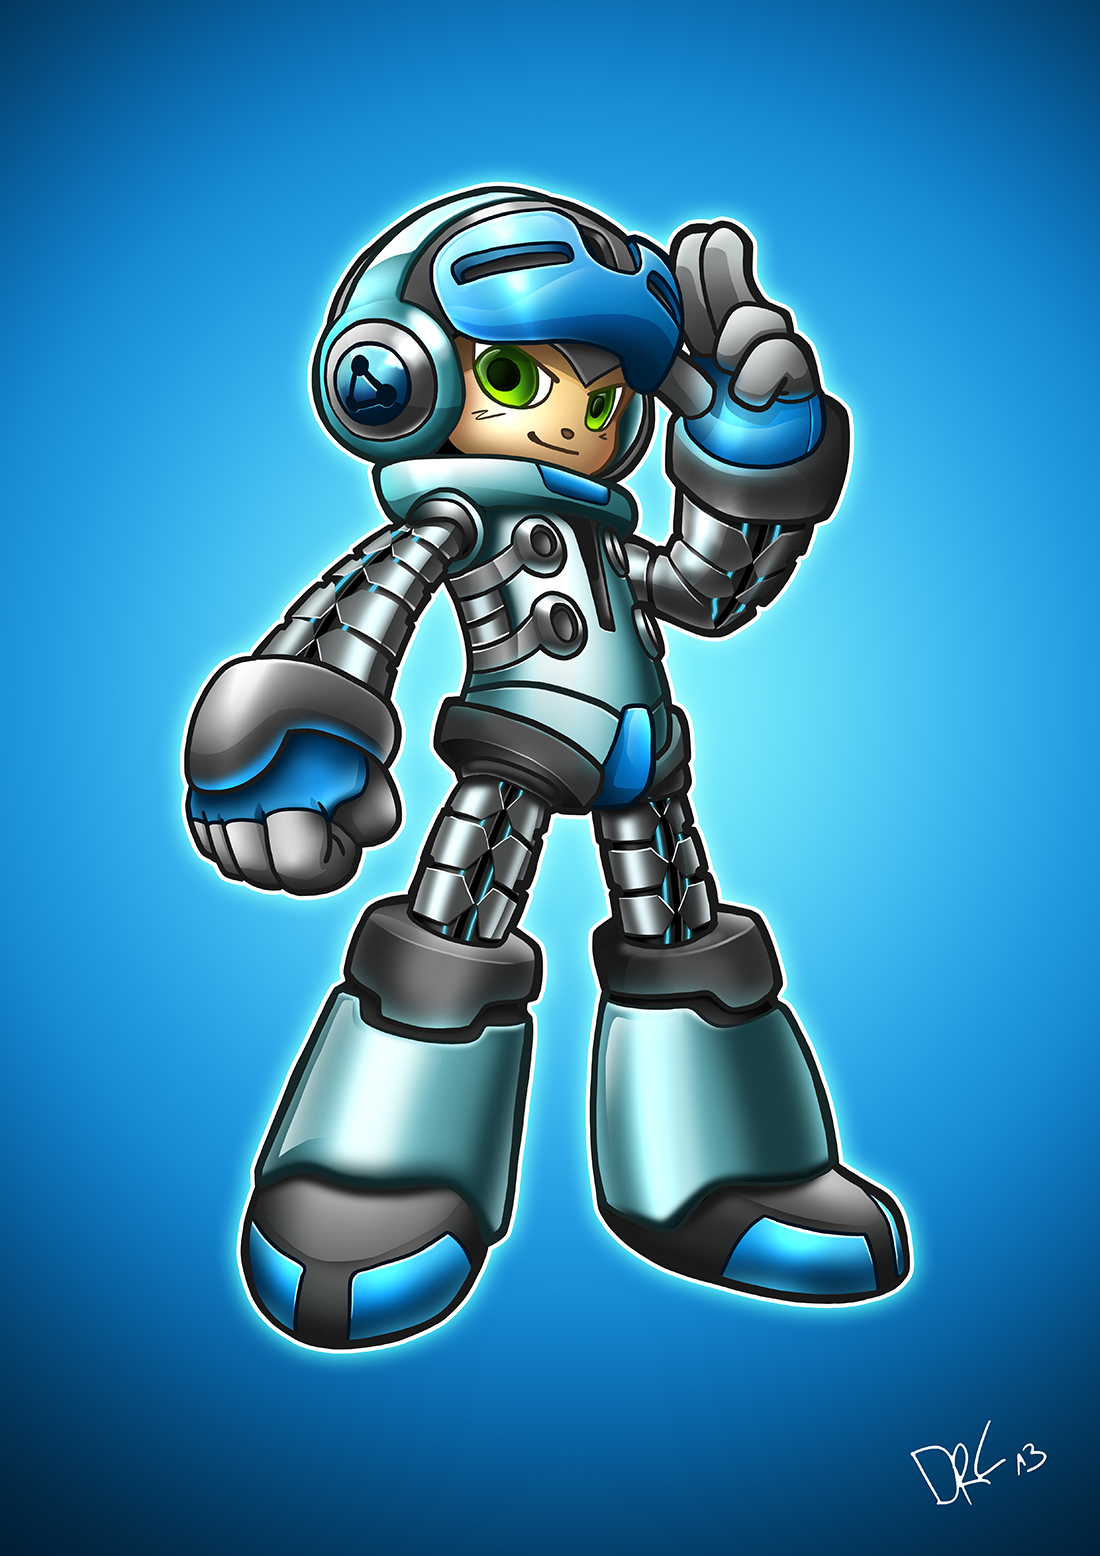 Beck - Mighty No. 9